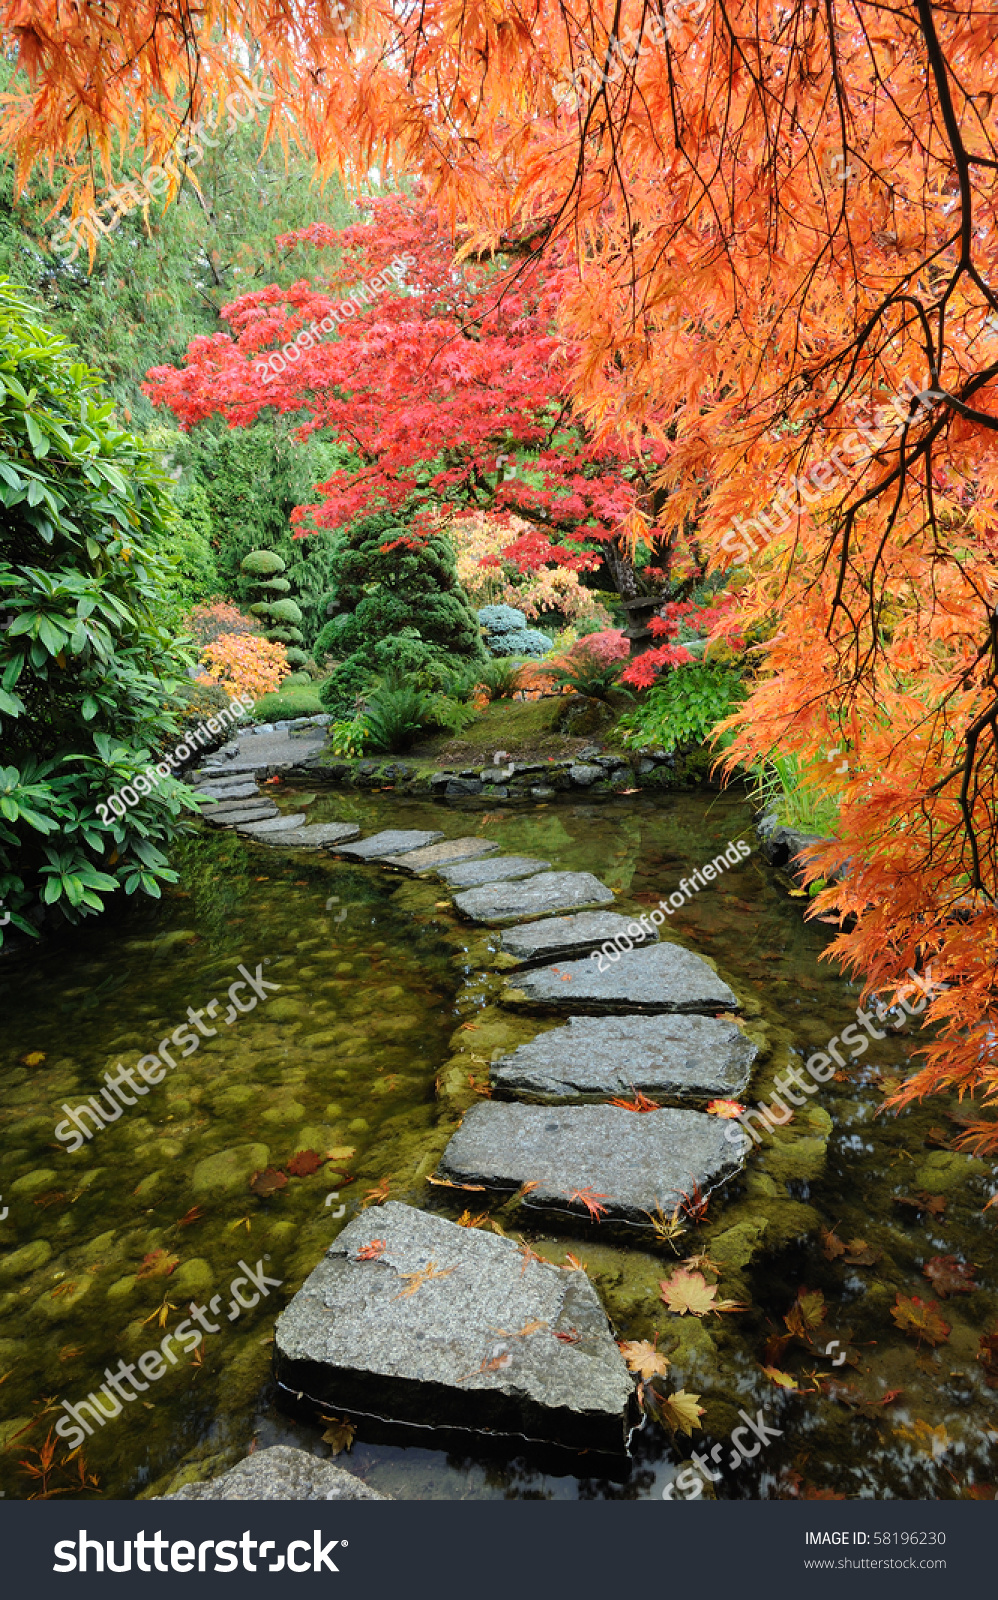 The Autumnal Look Of The Japanese Garden Inside The Famous Historic Butchart Gardens (Built In ...